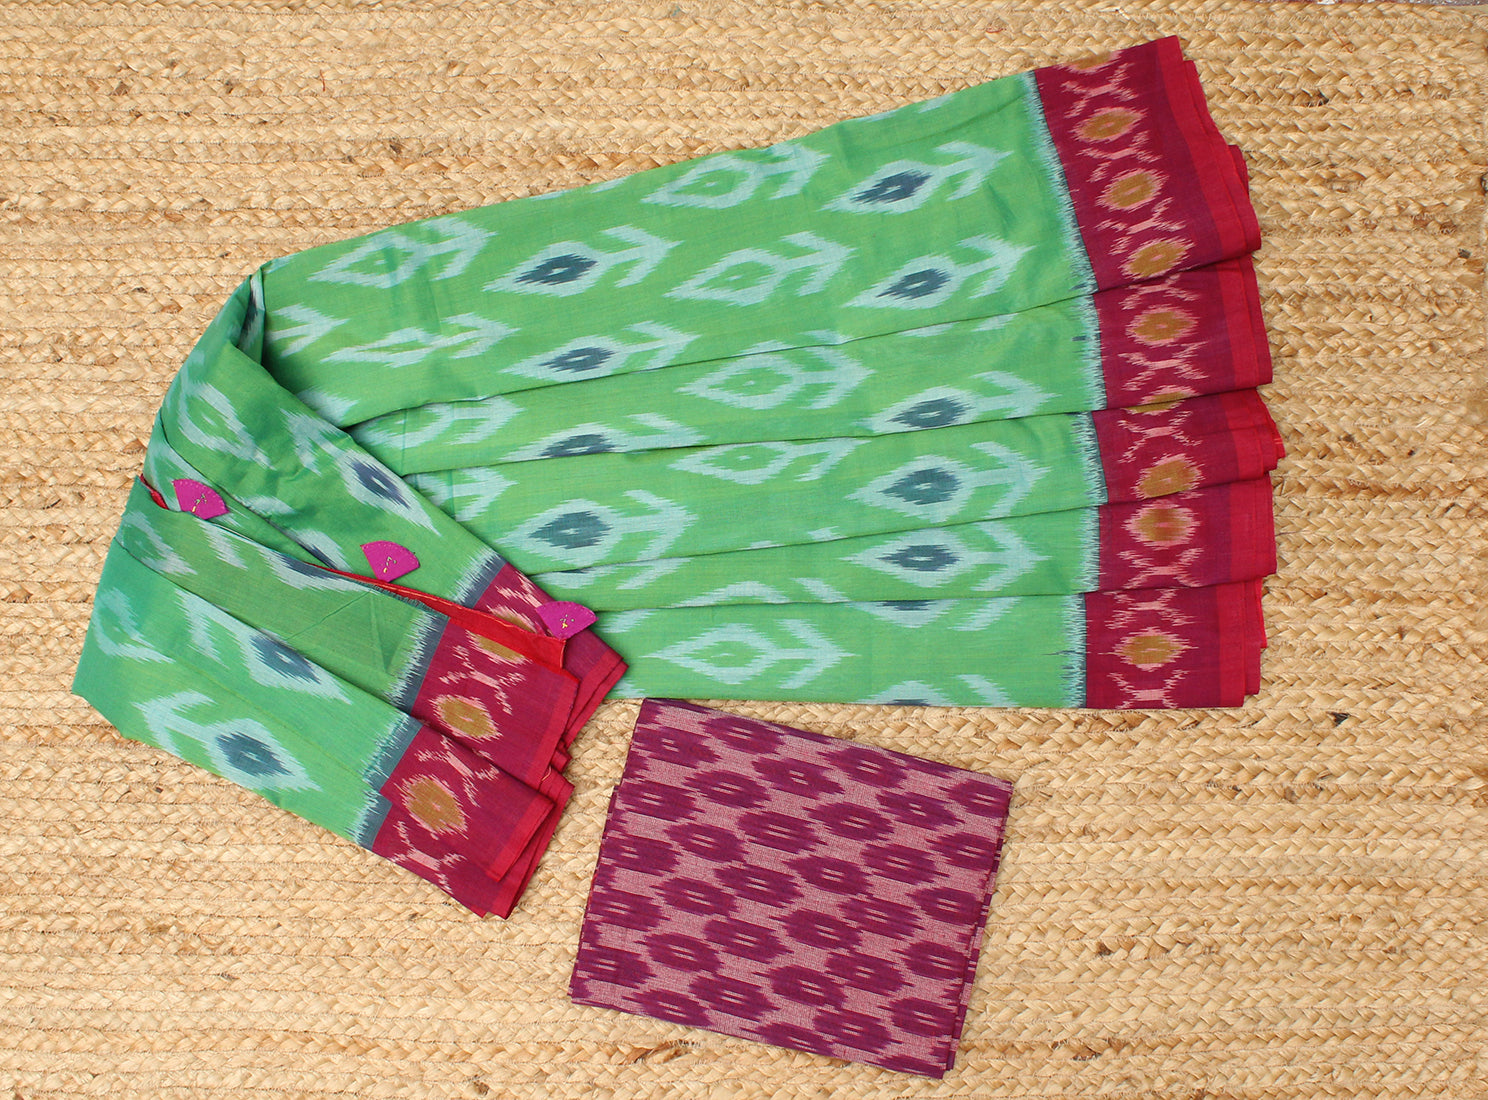 Green Pochampally Ikkat Handloom Saree with Purple Ikkat Blouse Piece